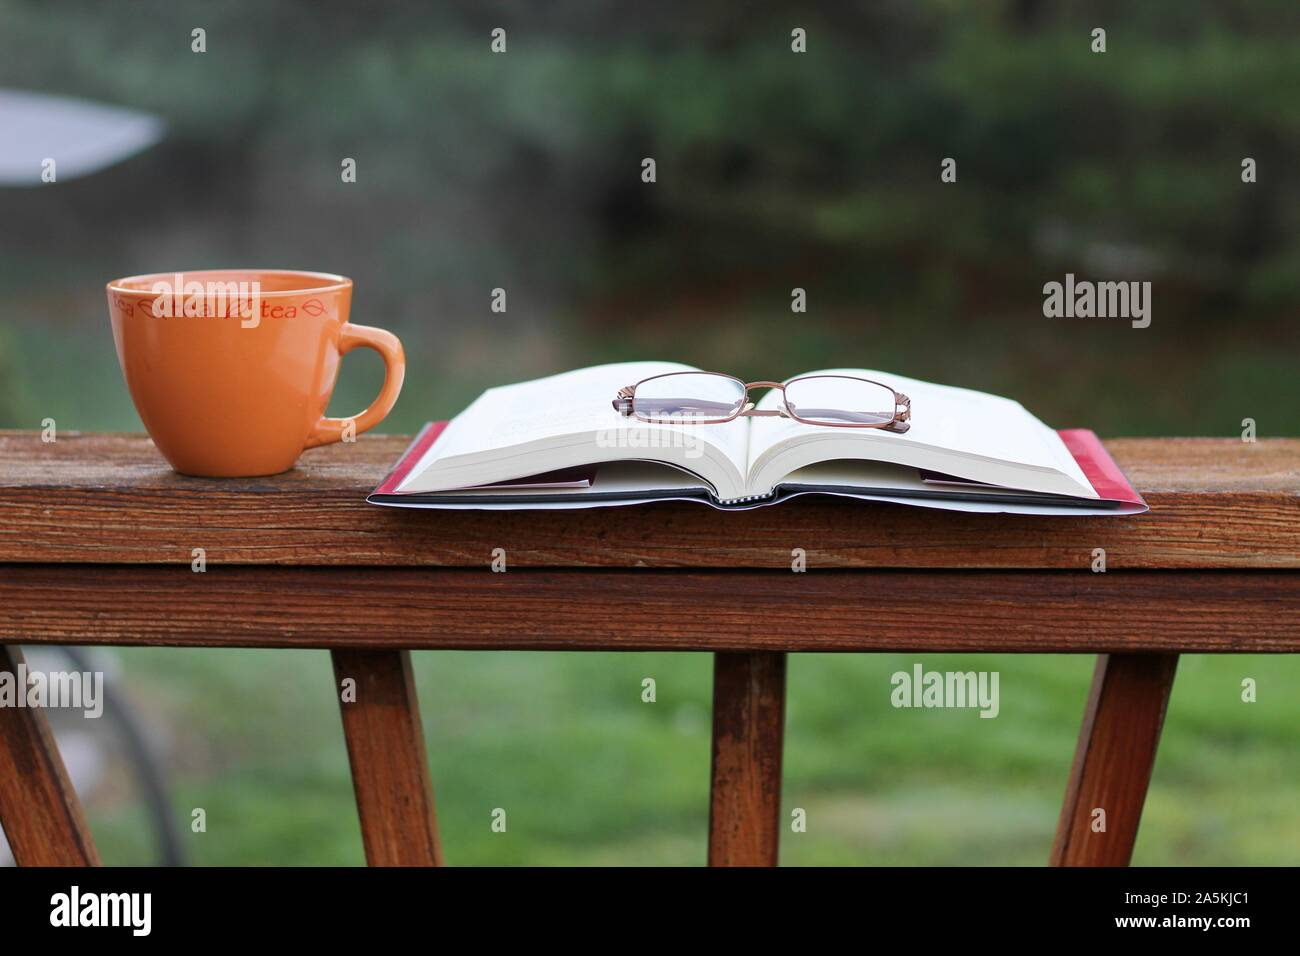 A pair of reading glasses on top of a book and a cup of tea outside on a deck Stock Photo